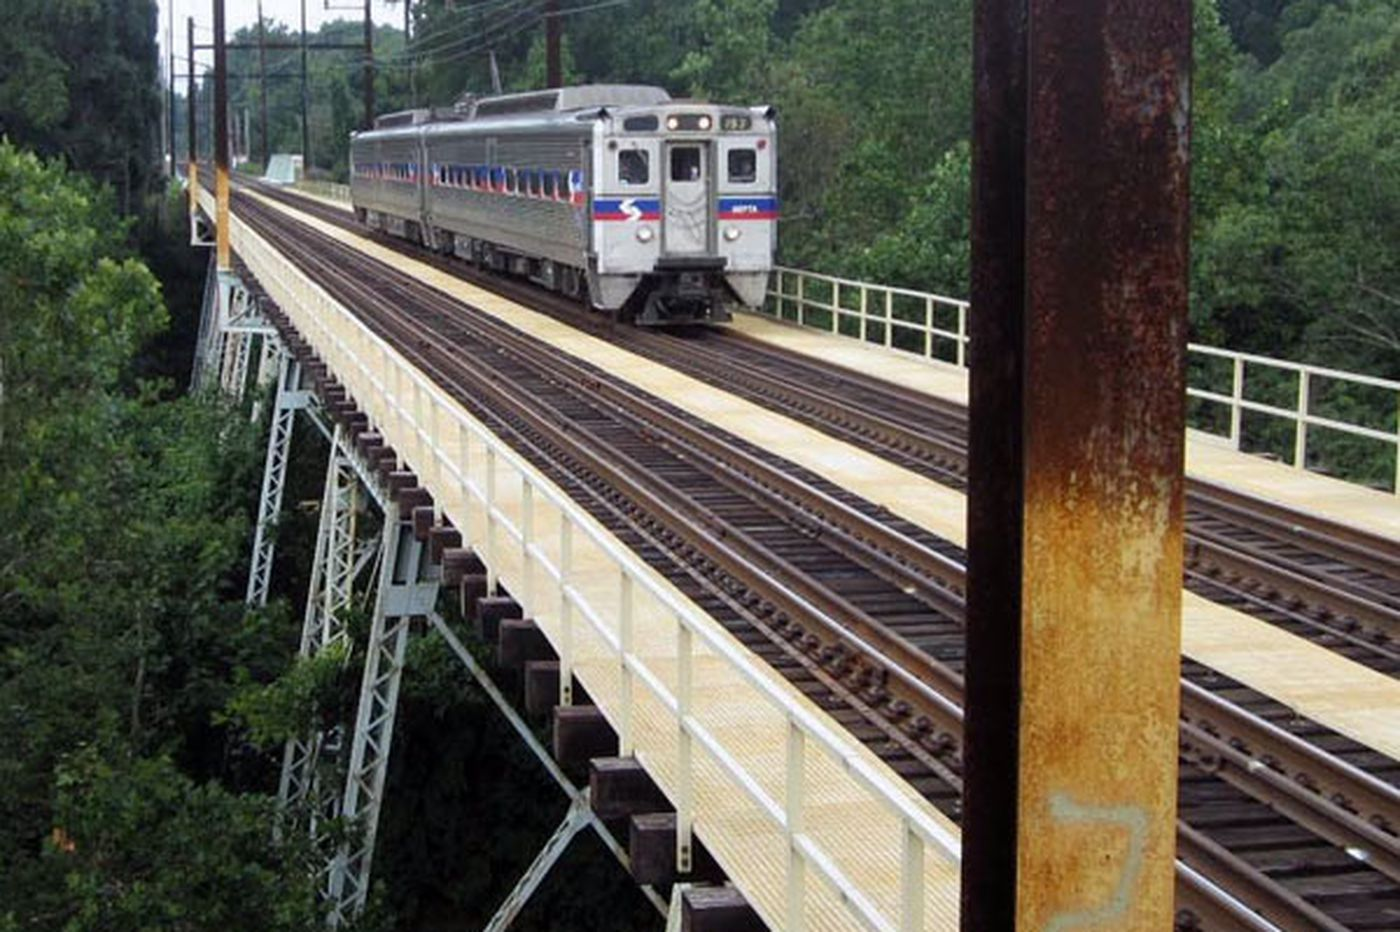 Delco bridge repair will cost SEPTA $55.5M